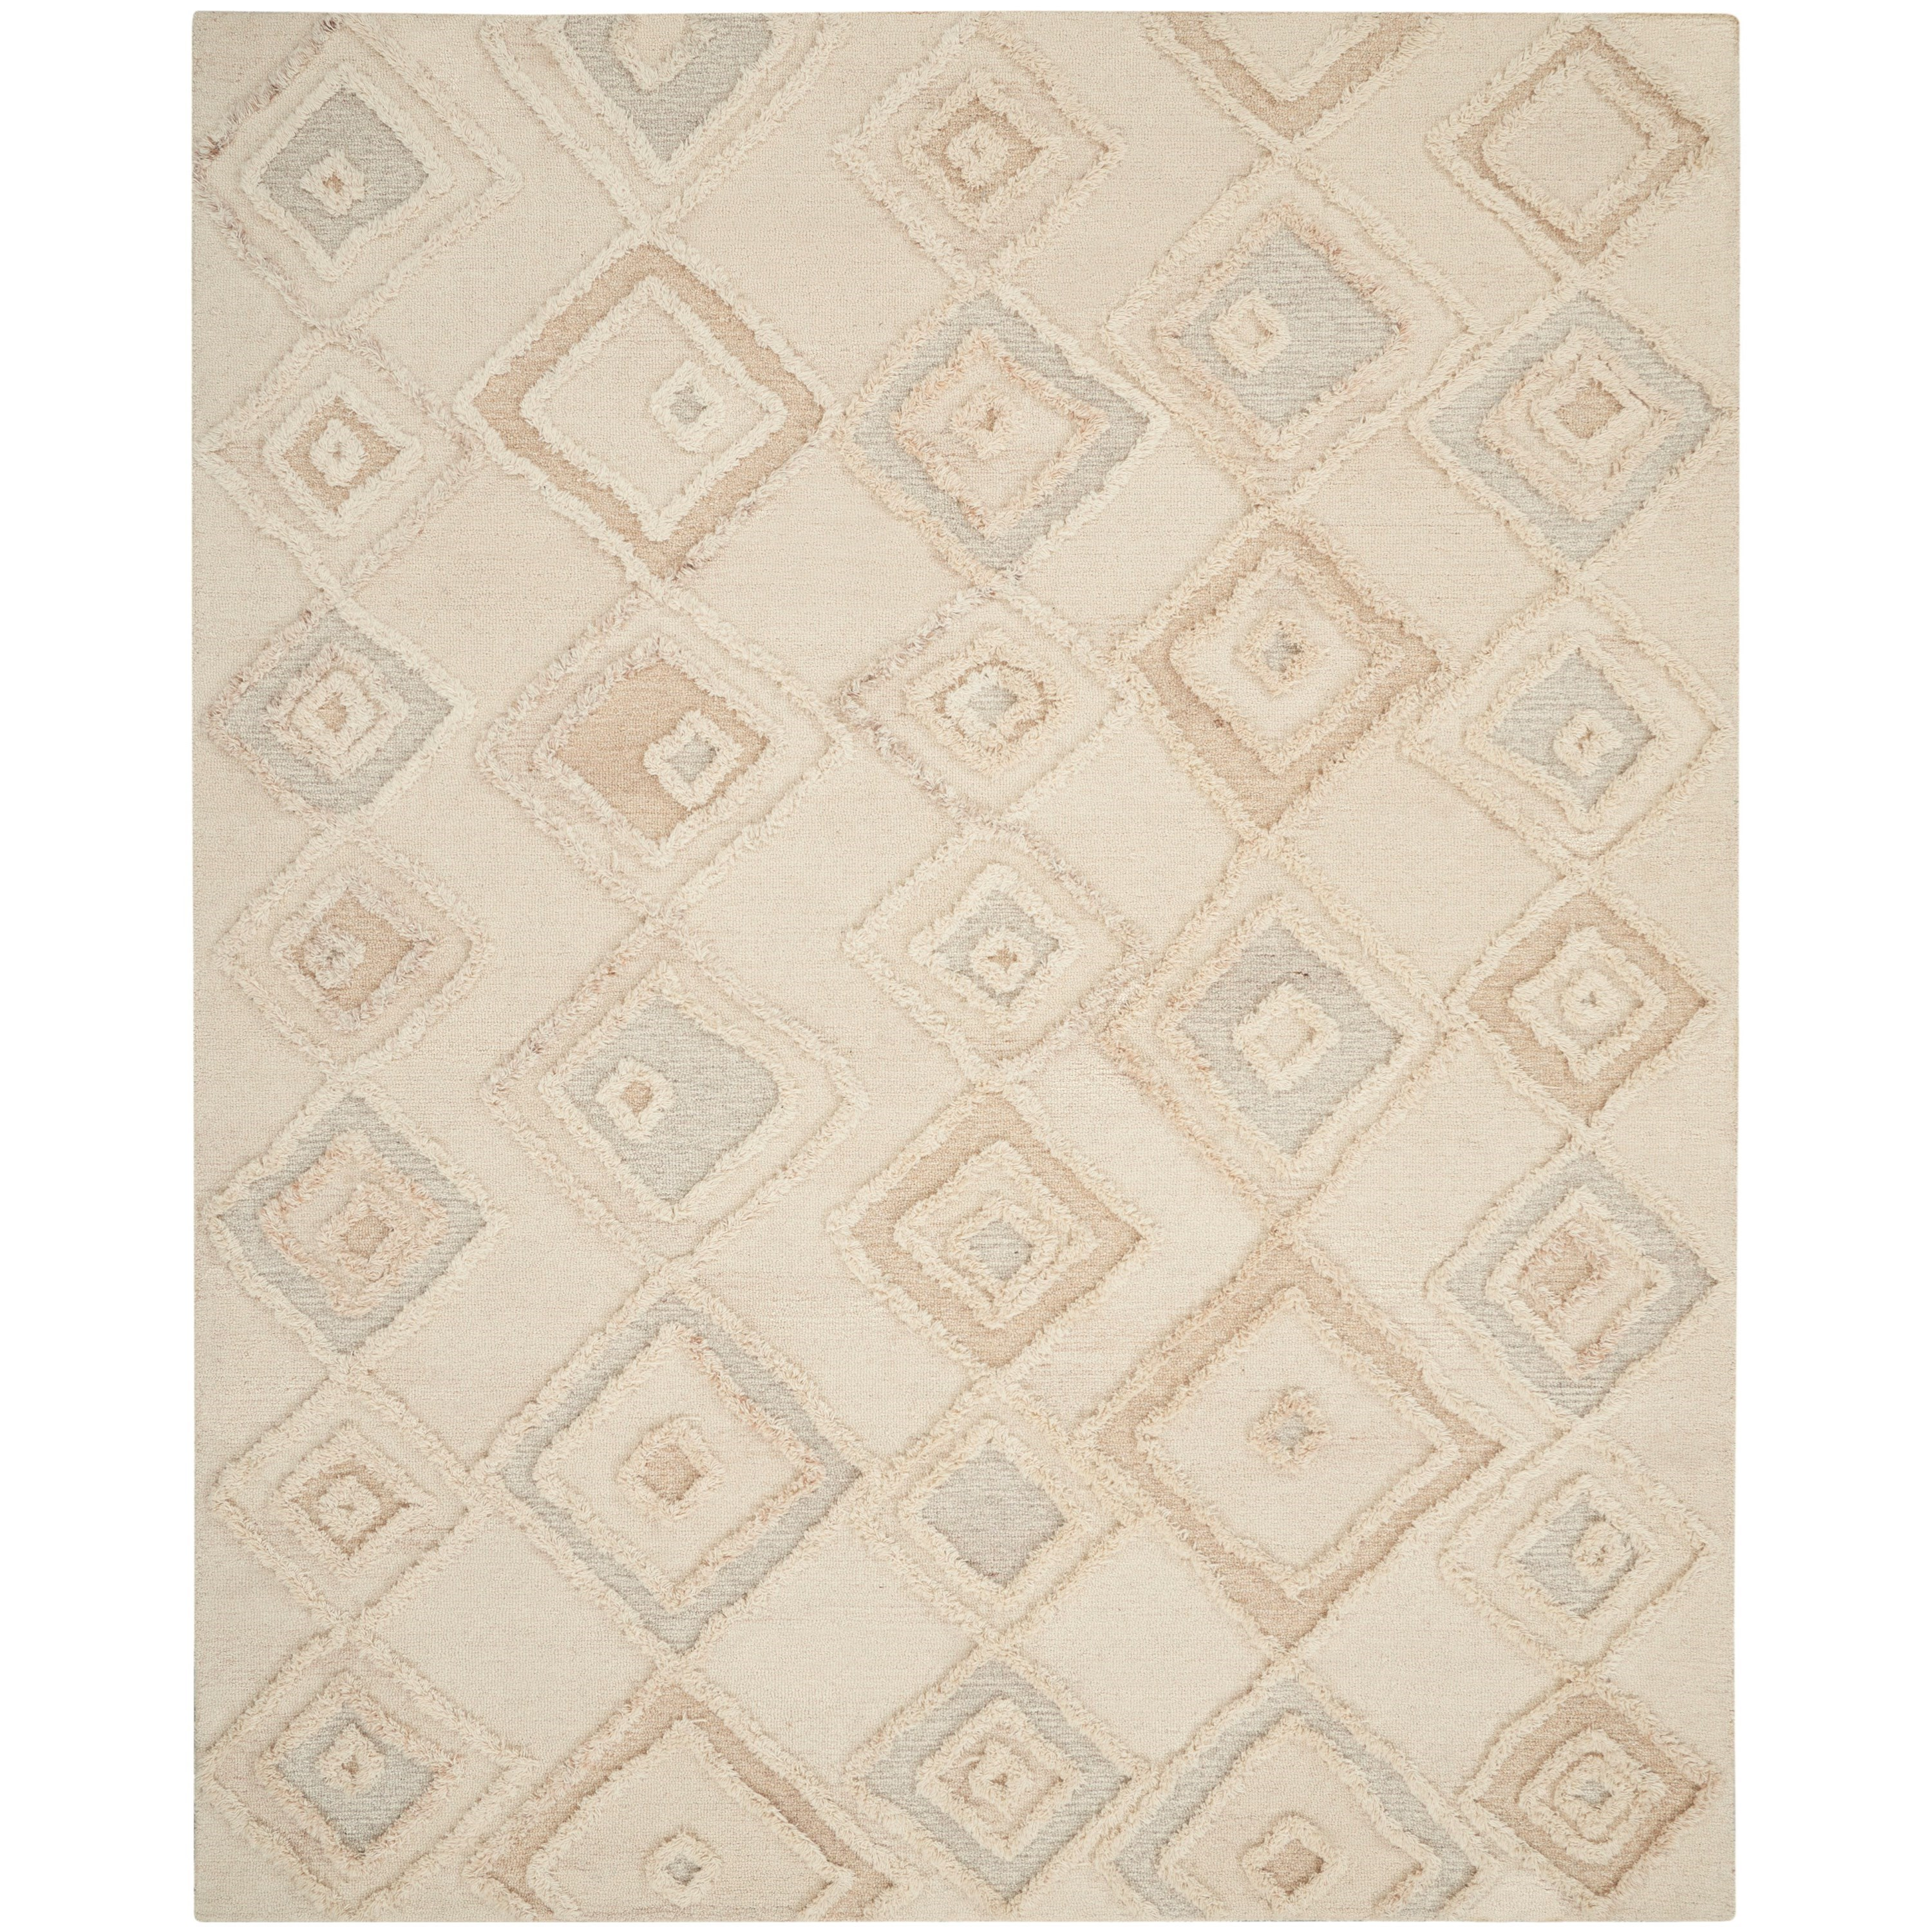 Moroccan Court 2020 8' x 10' Rug by Nourison at Sprintz Furniture